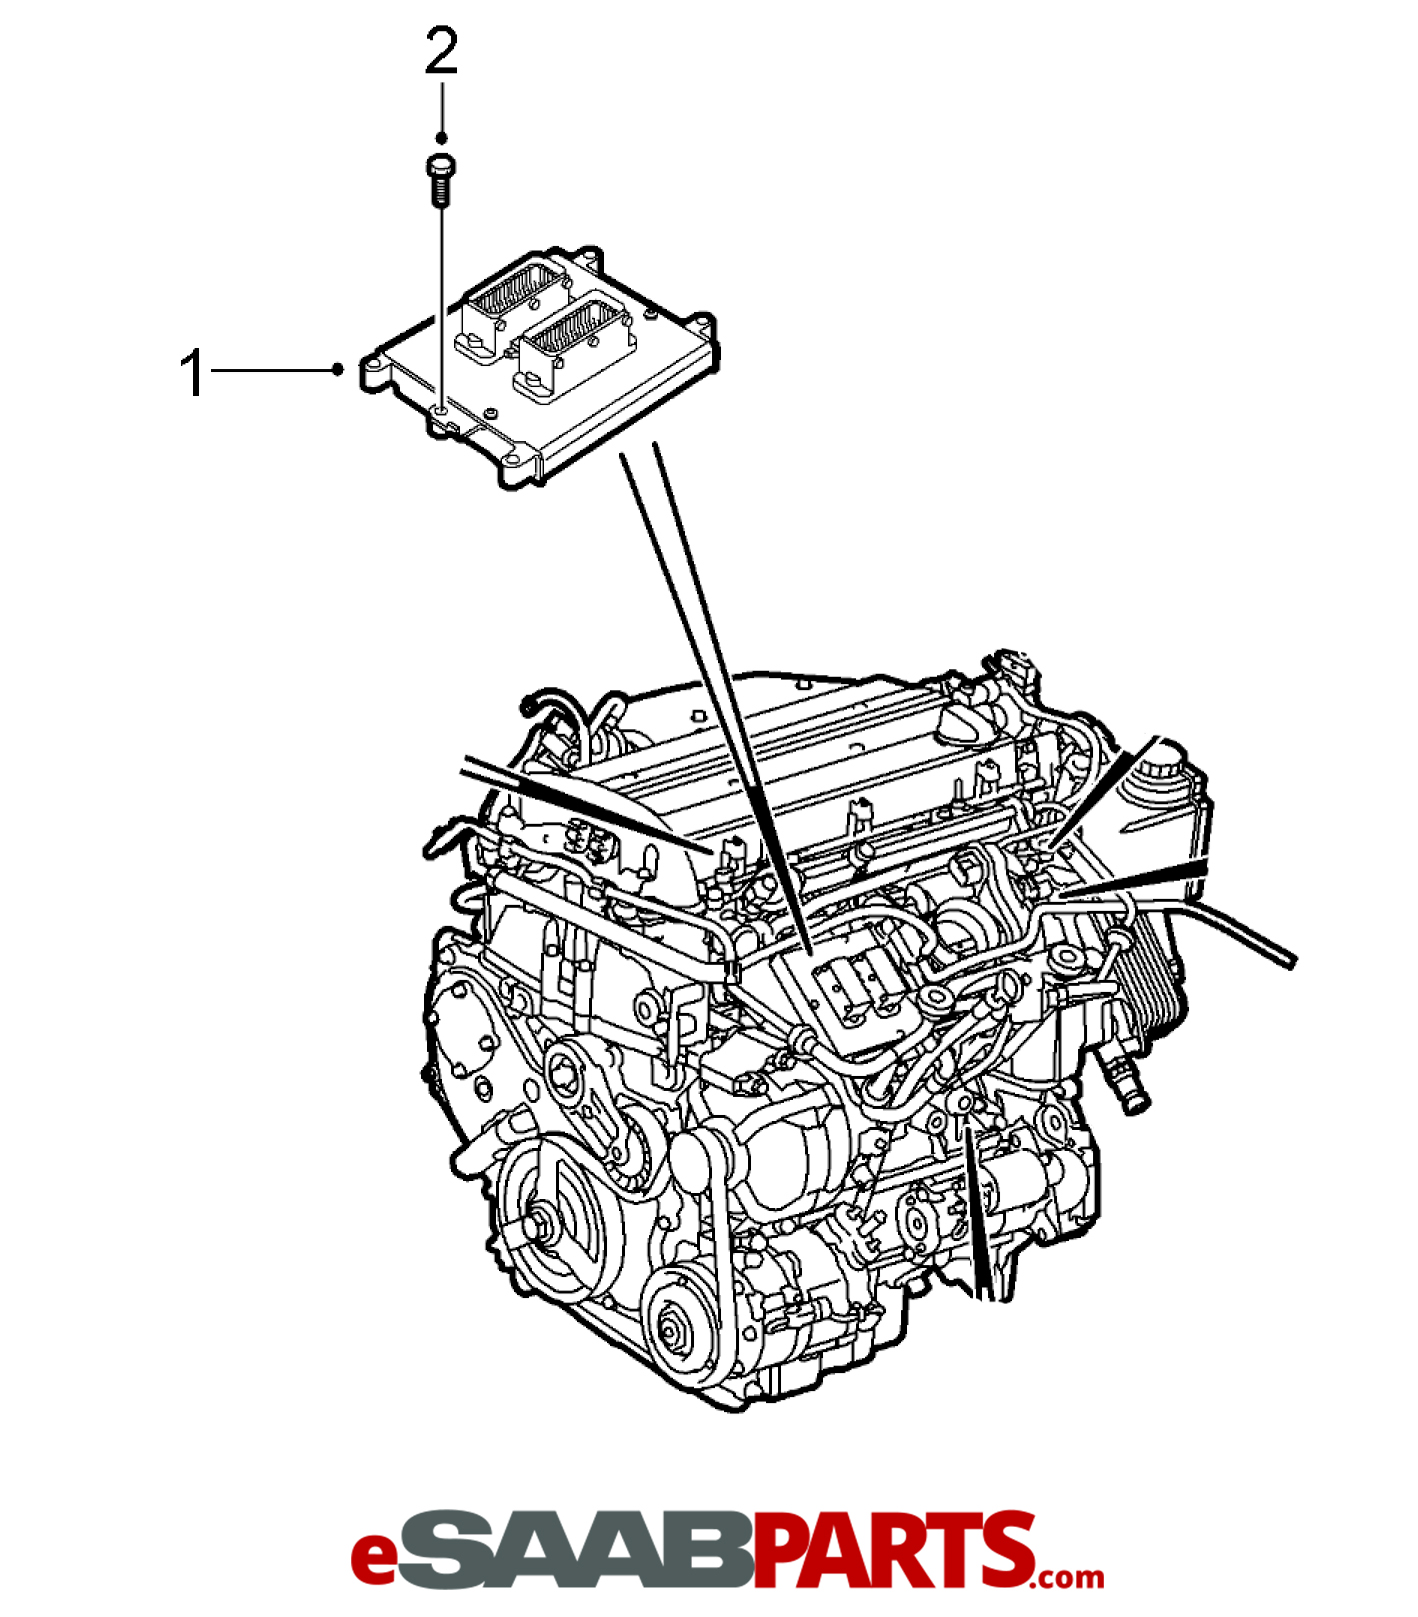 2004 jaguar x type engine diagram